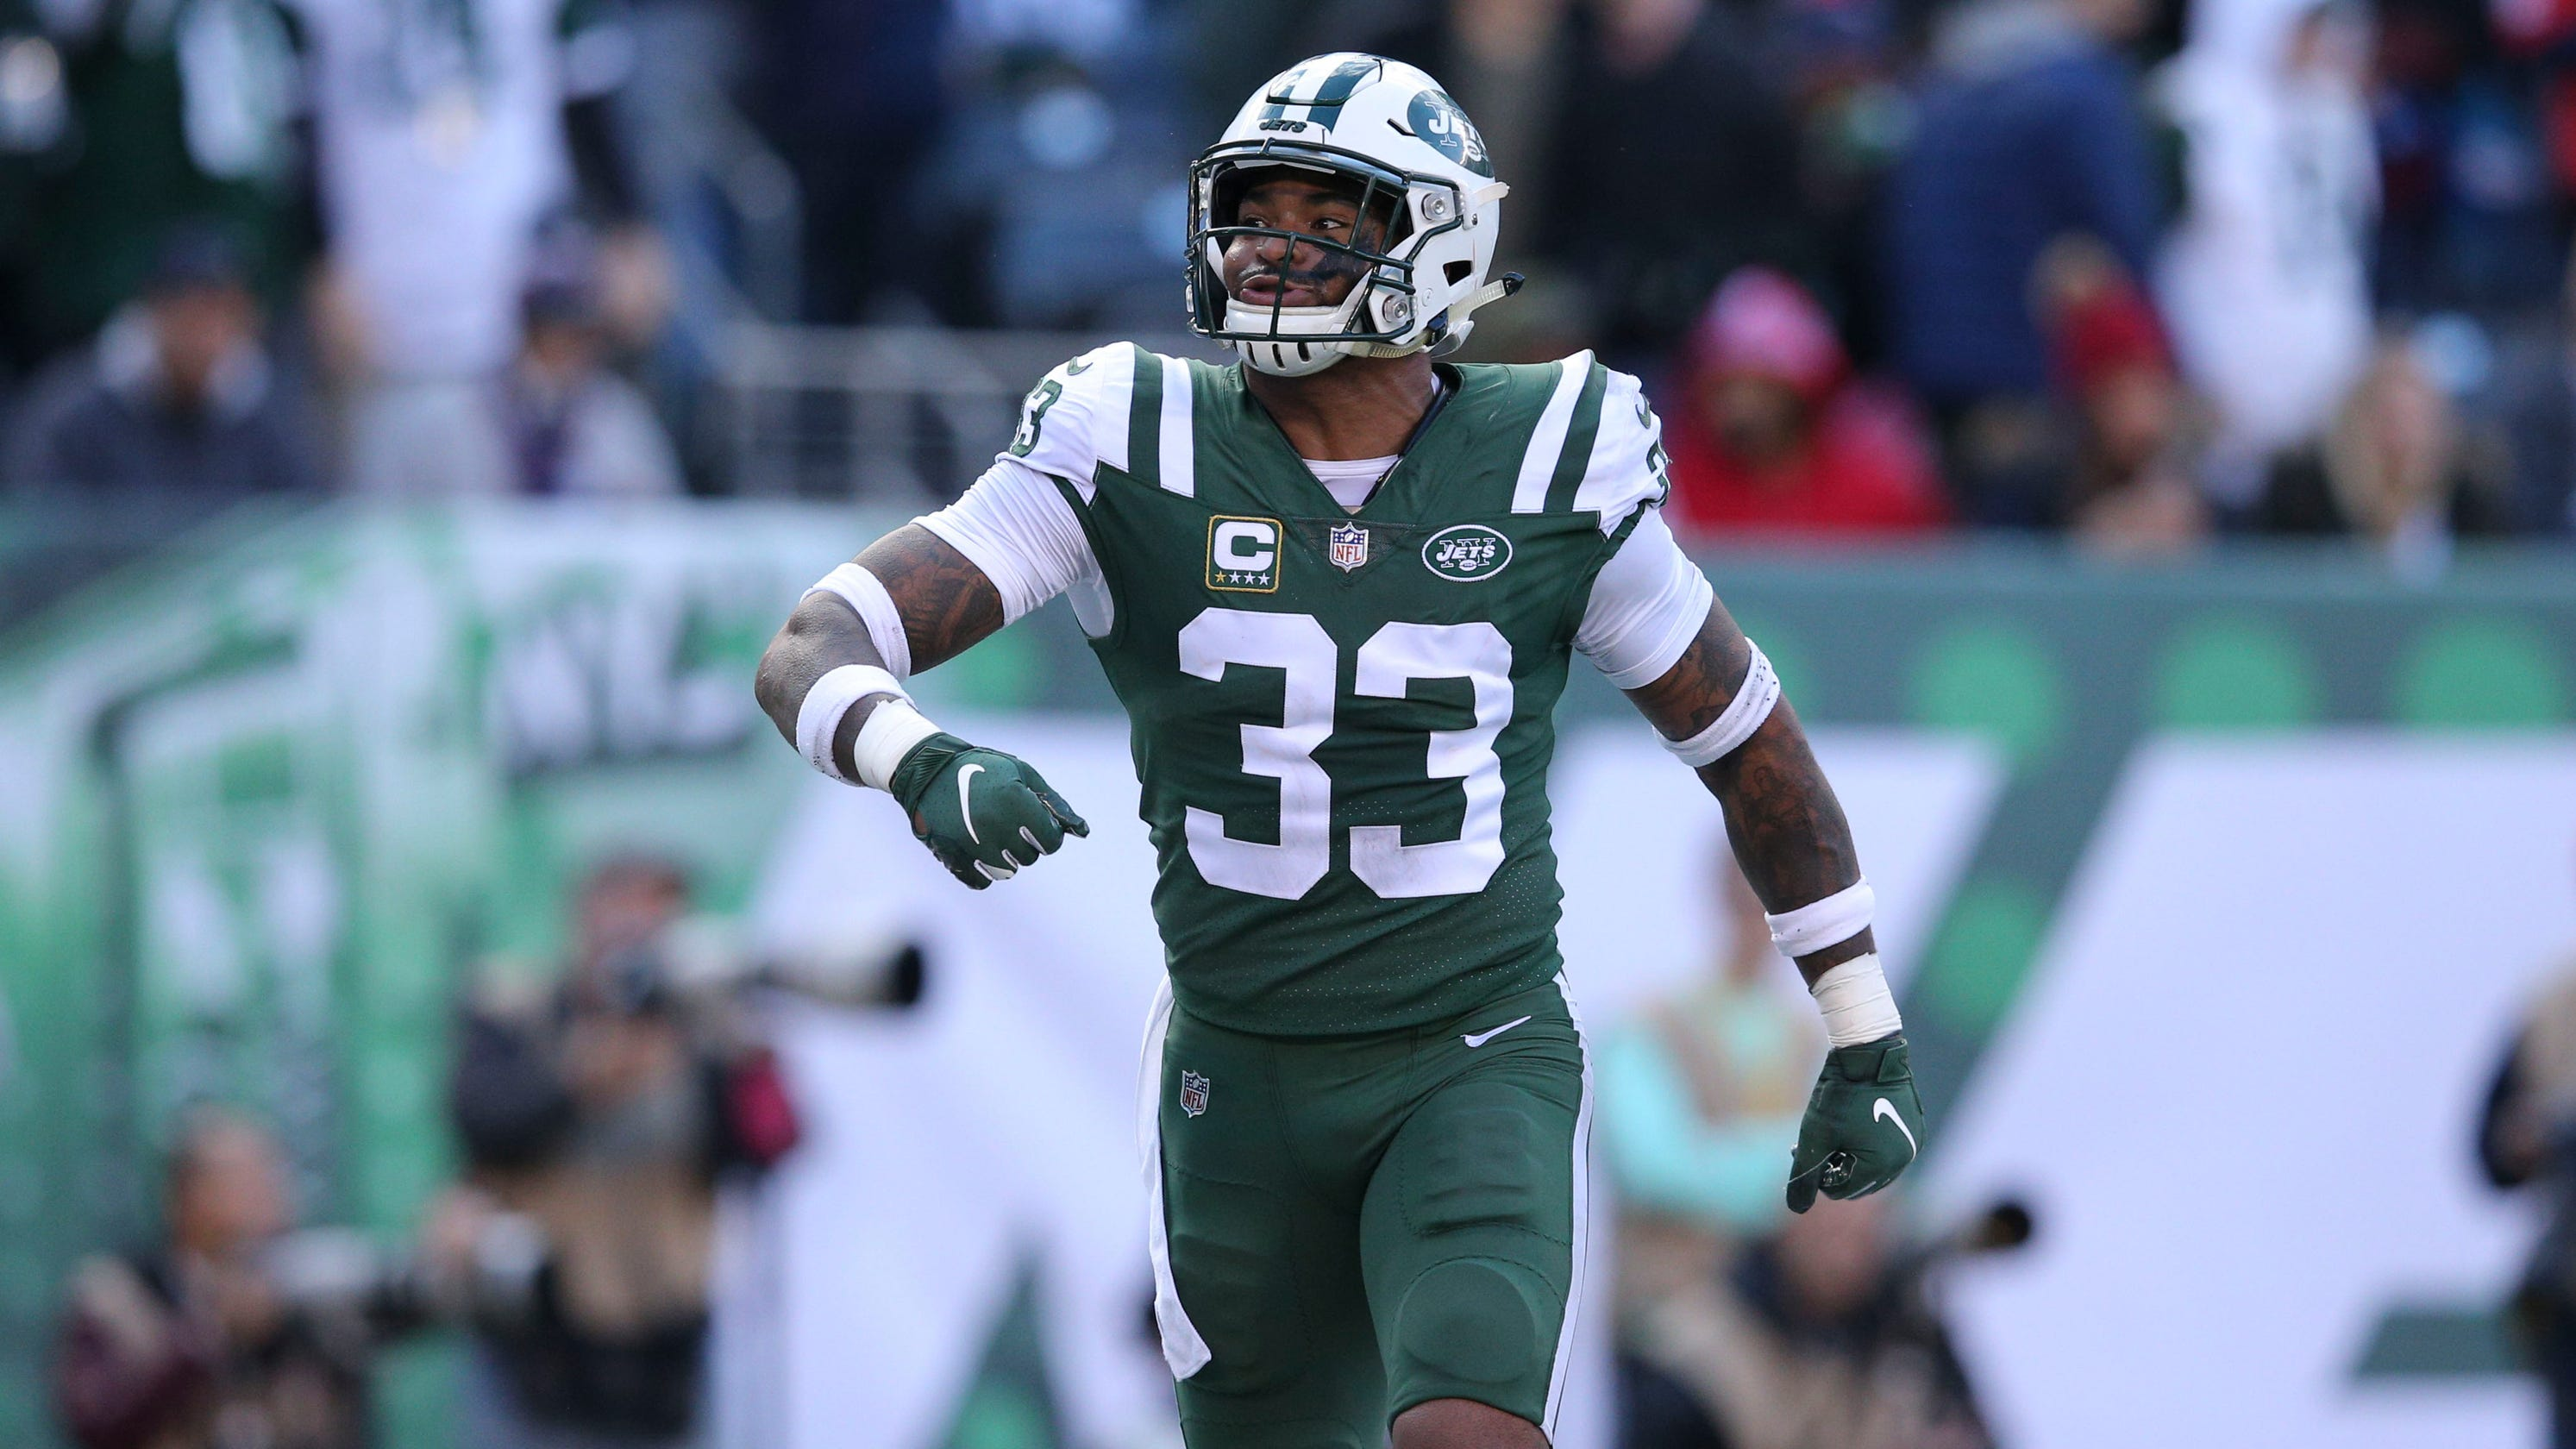 b28fe5b4801 Jets  Jamal Adams cried after the  dream come true  of making his first Pro  Bowl